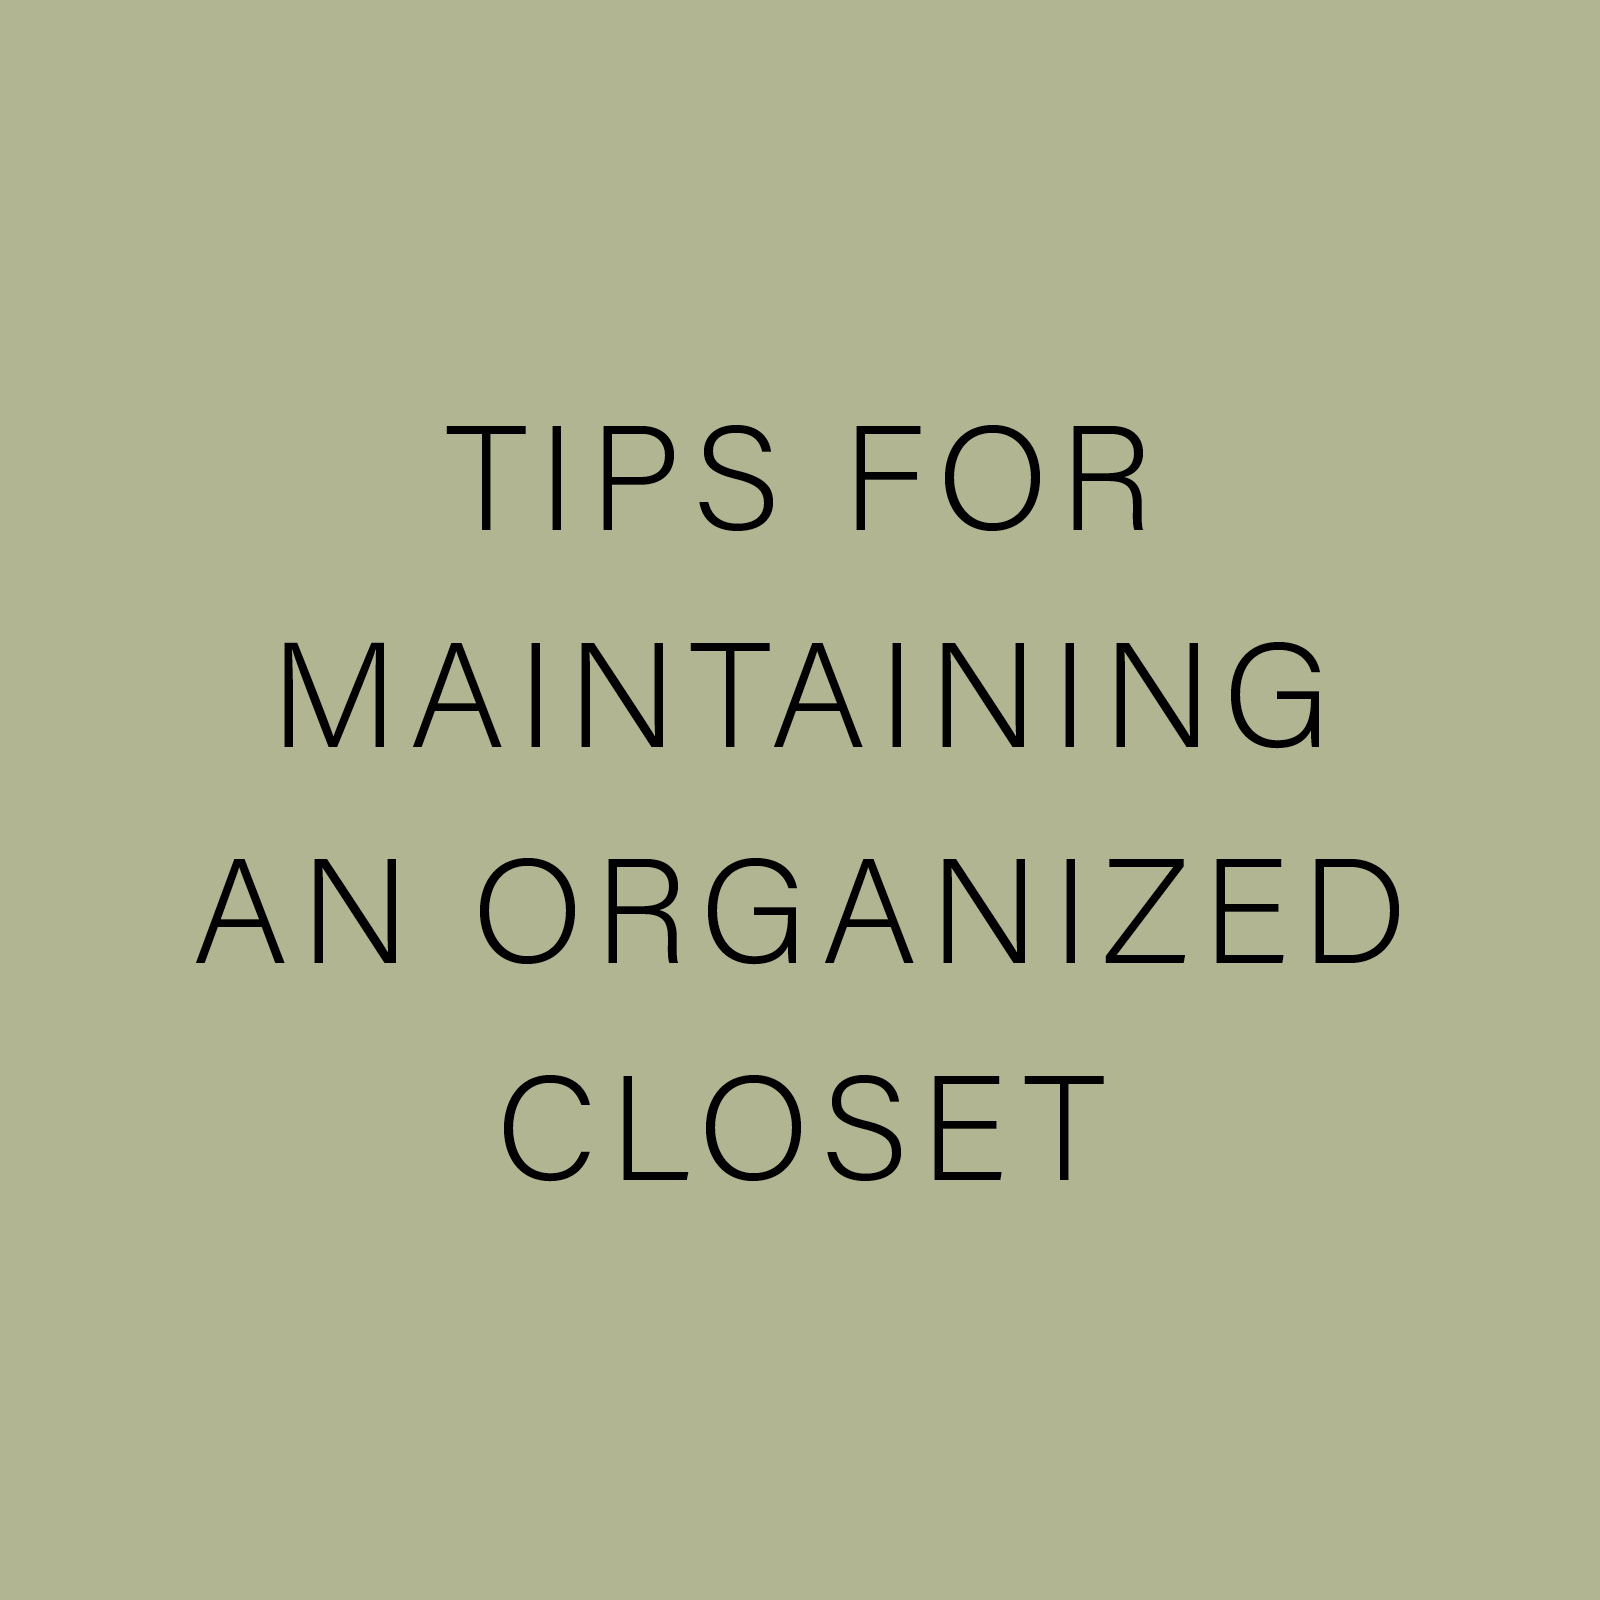 TIPS FOR MAINTAINING AN ORGANIZED CLOSET.jpg